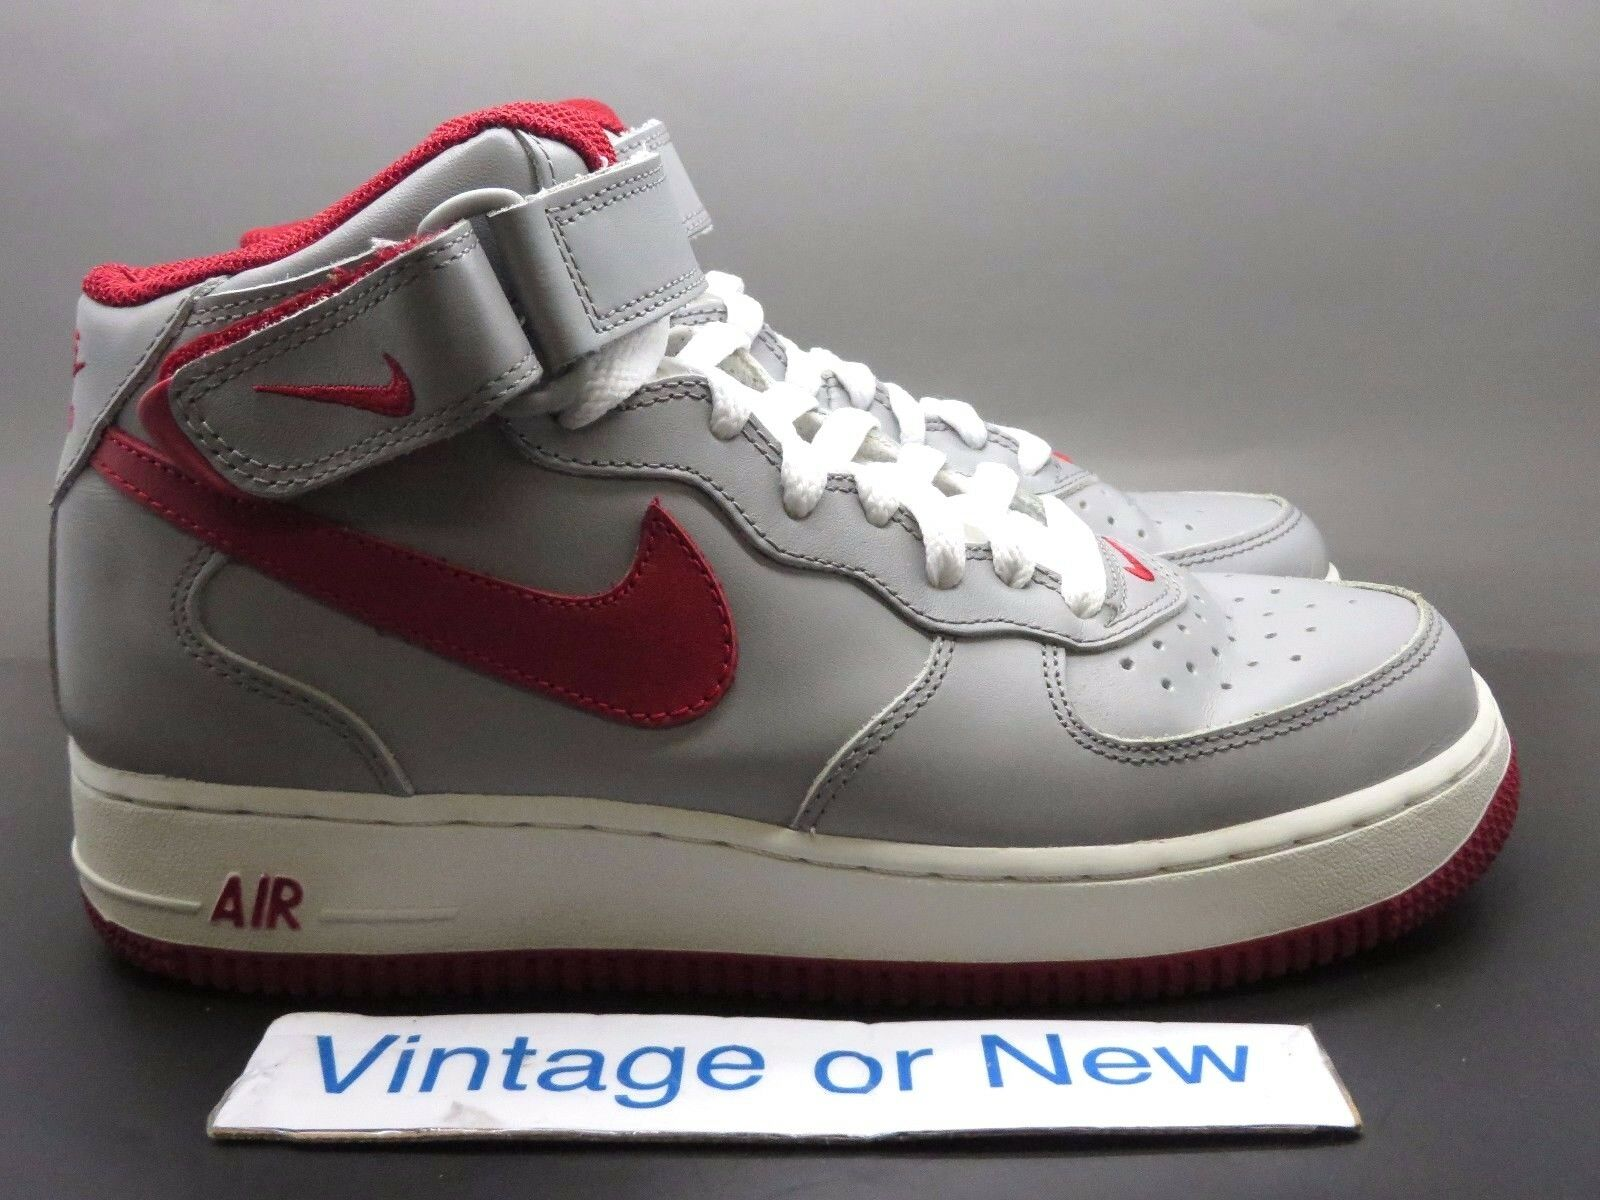 VTG Nike Air Force 1 Mid Medium Grey Varsity Red White 2003 sz 7.5 Scarpe classiche da uomo